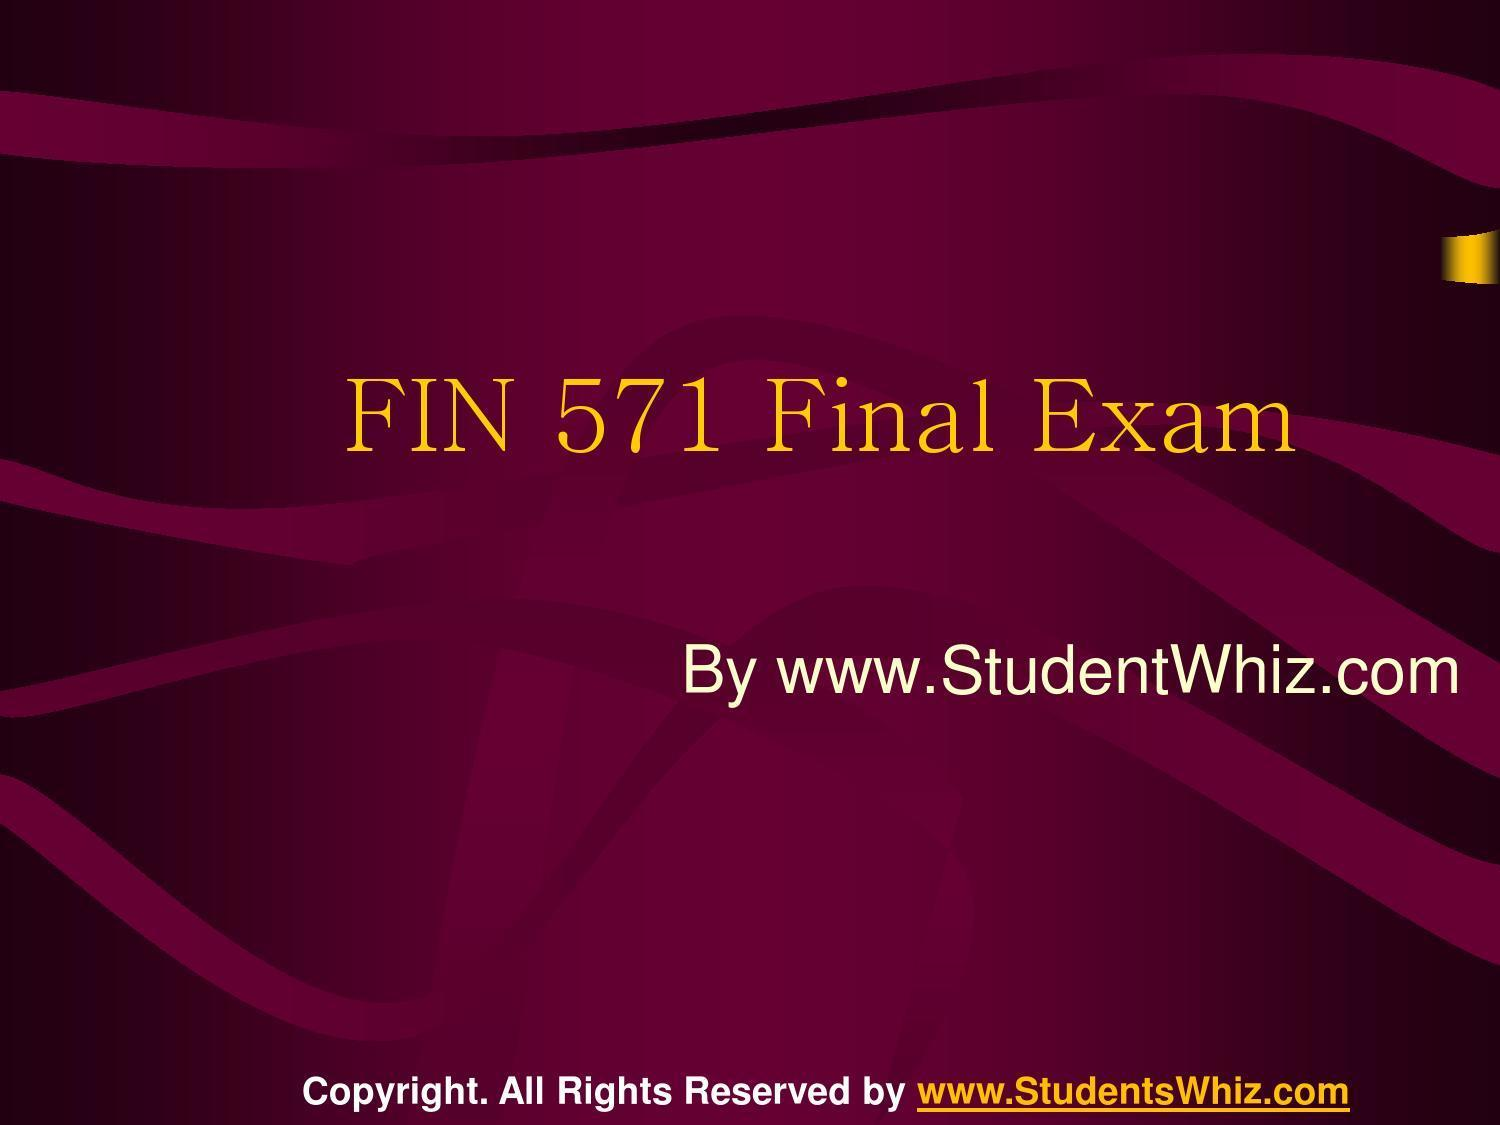 fin 571 final exam answers